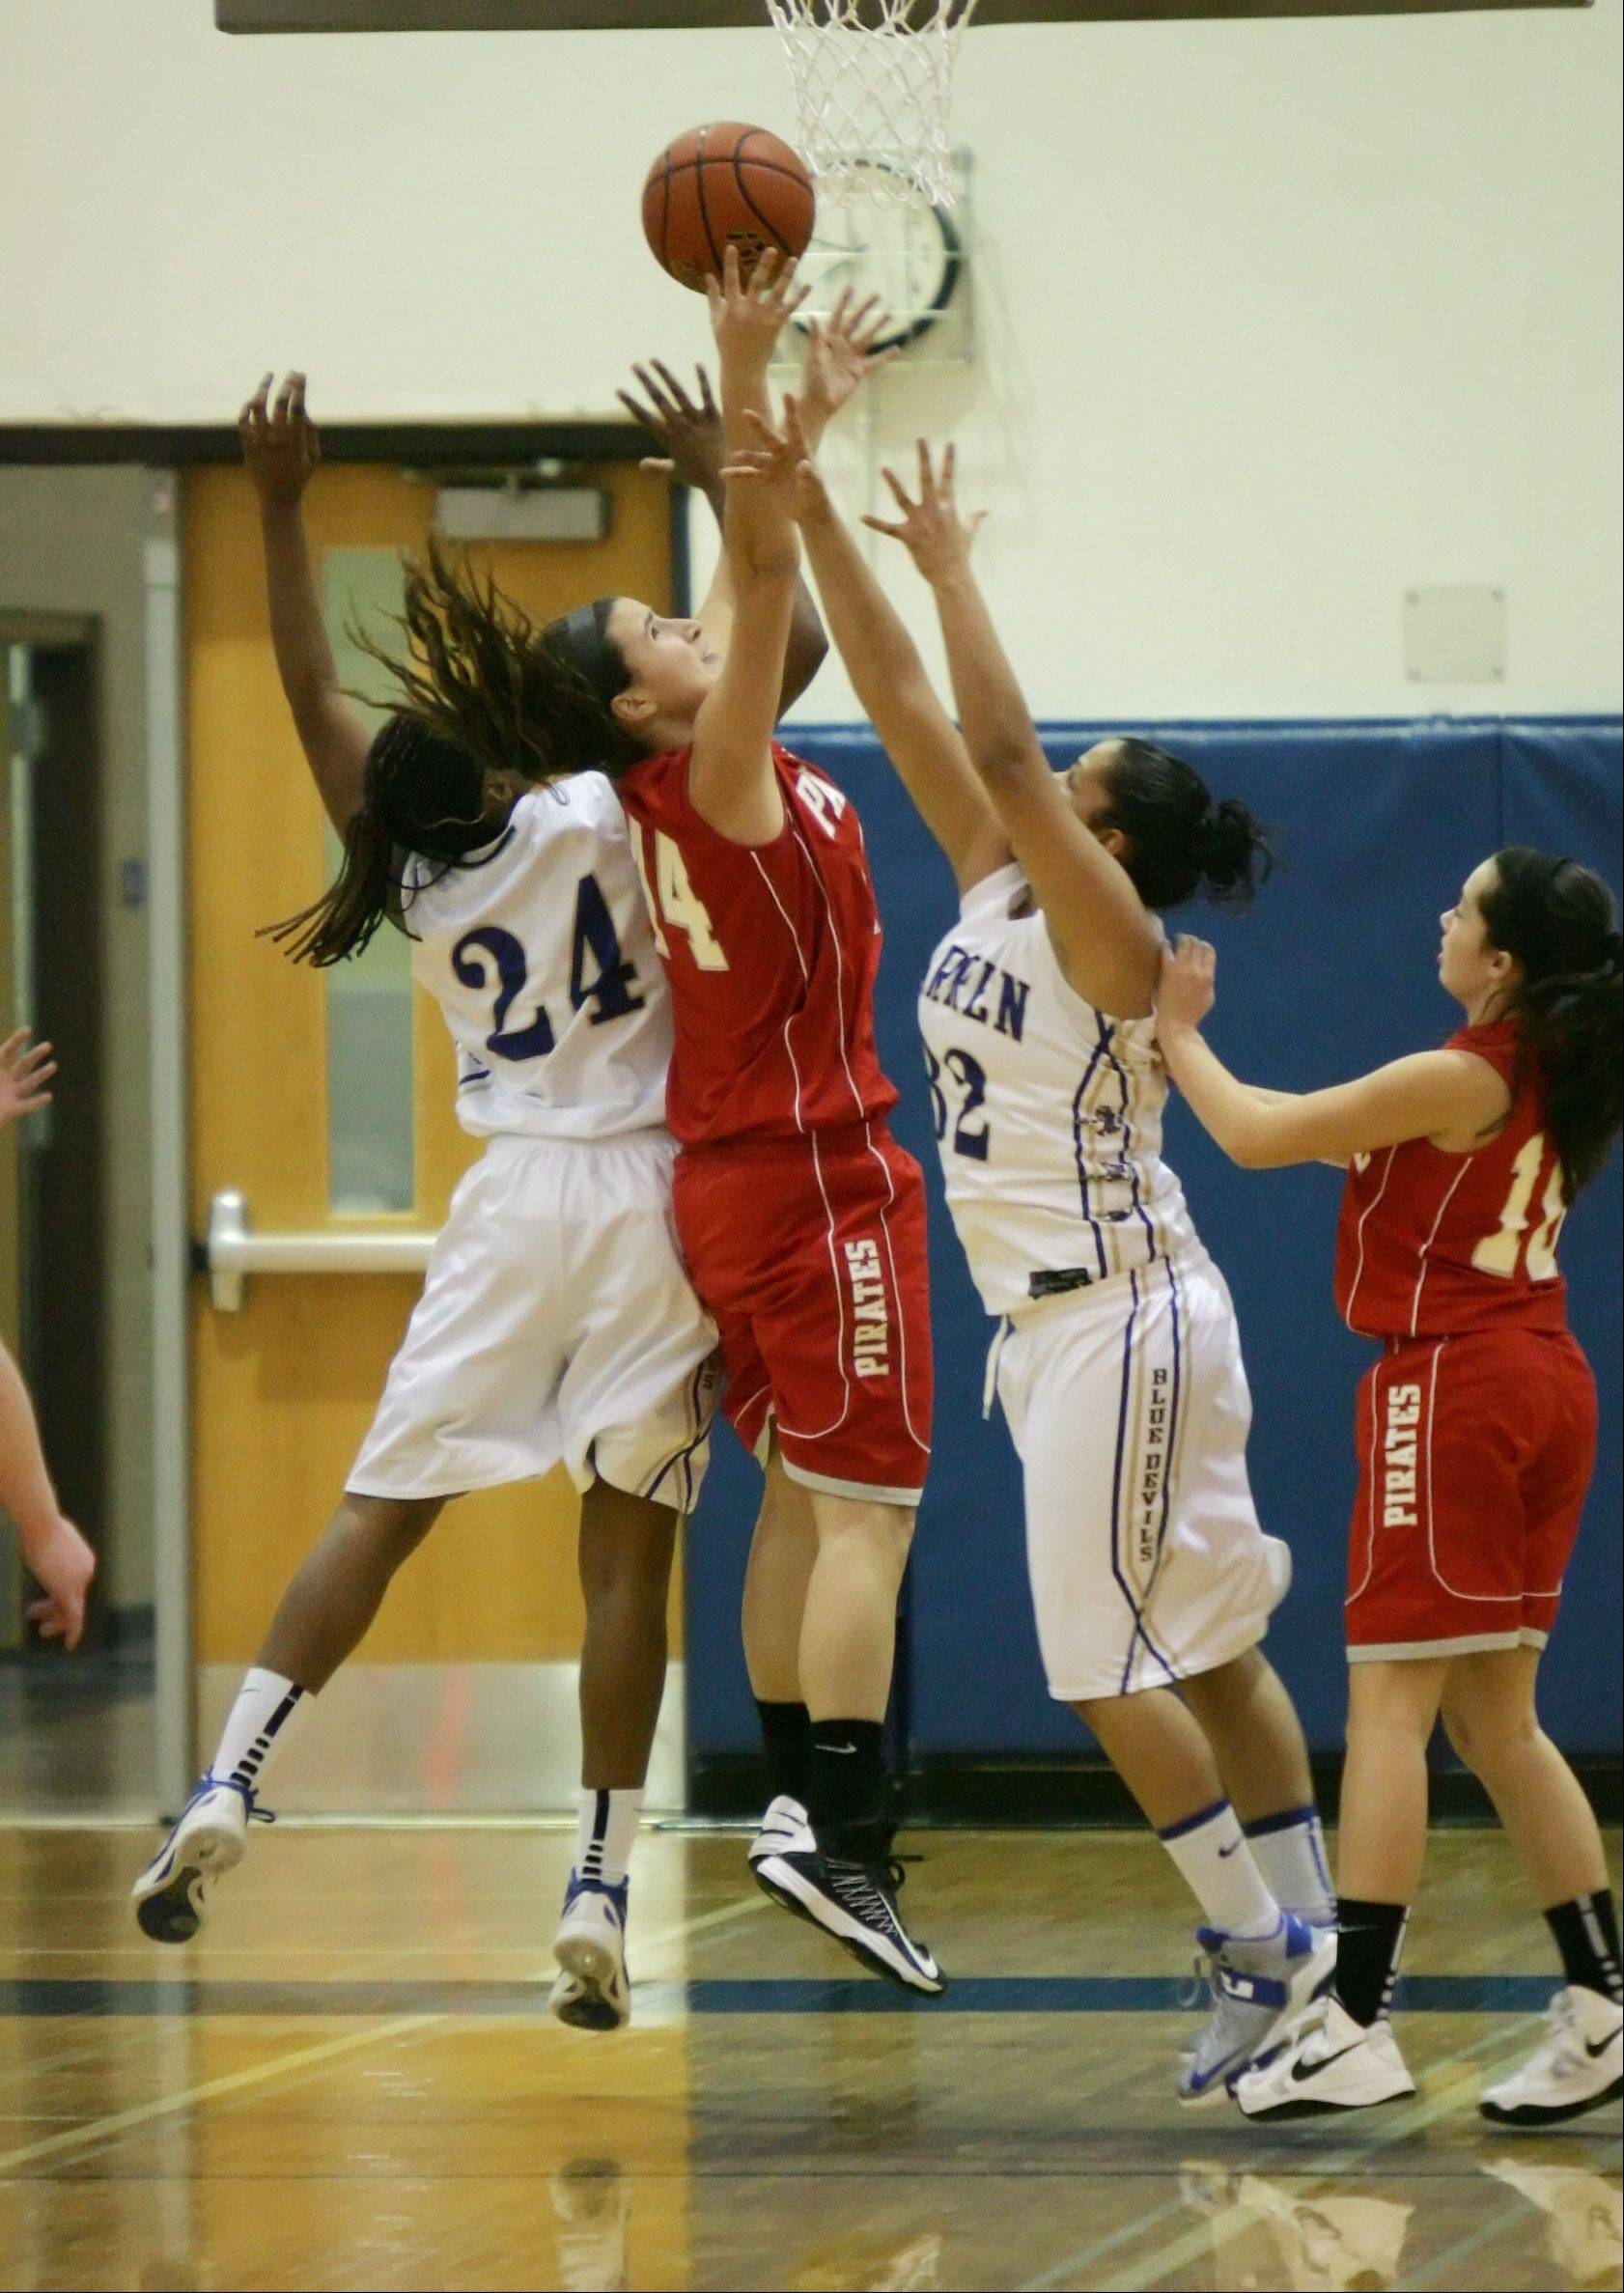 Images from the Palatine vs. Warren girls basketball game on Thursday, December 27 in Gurnee.